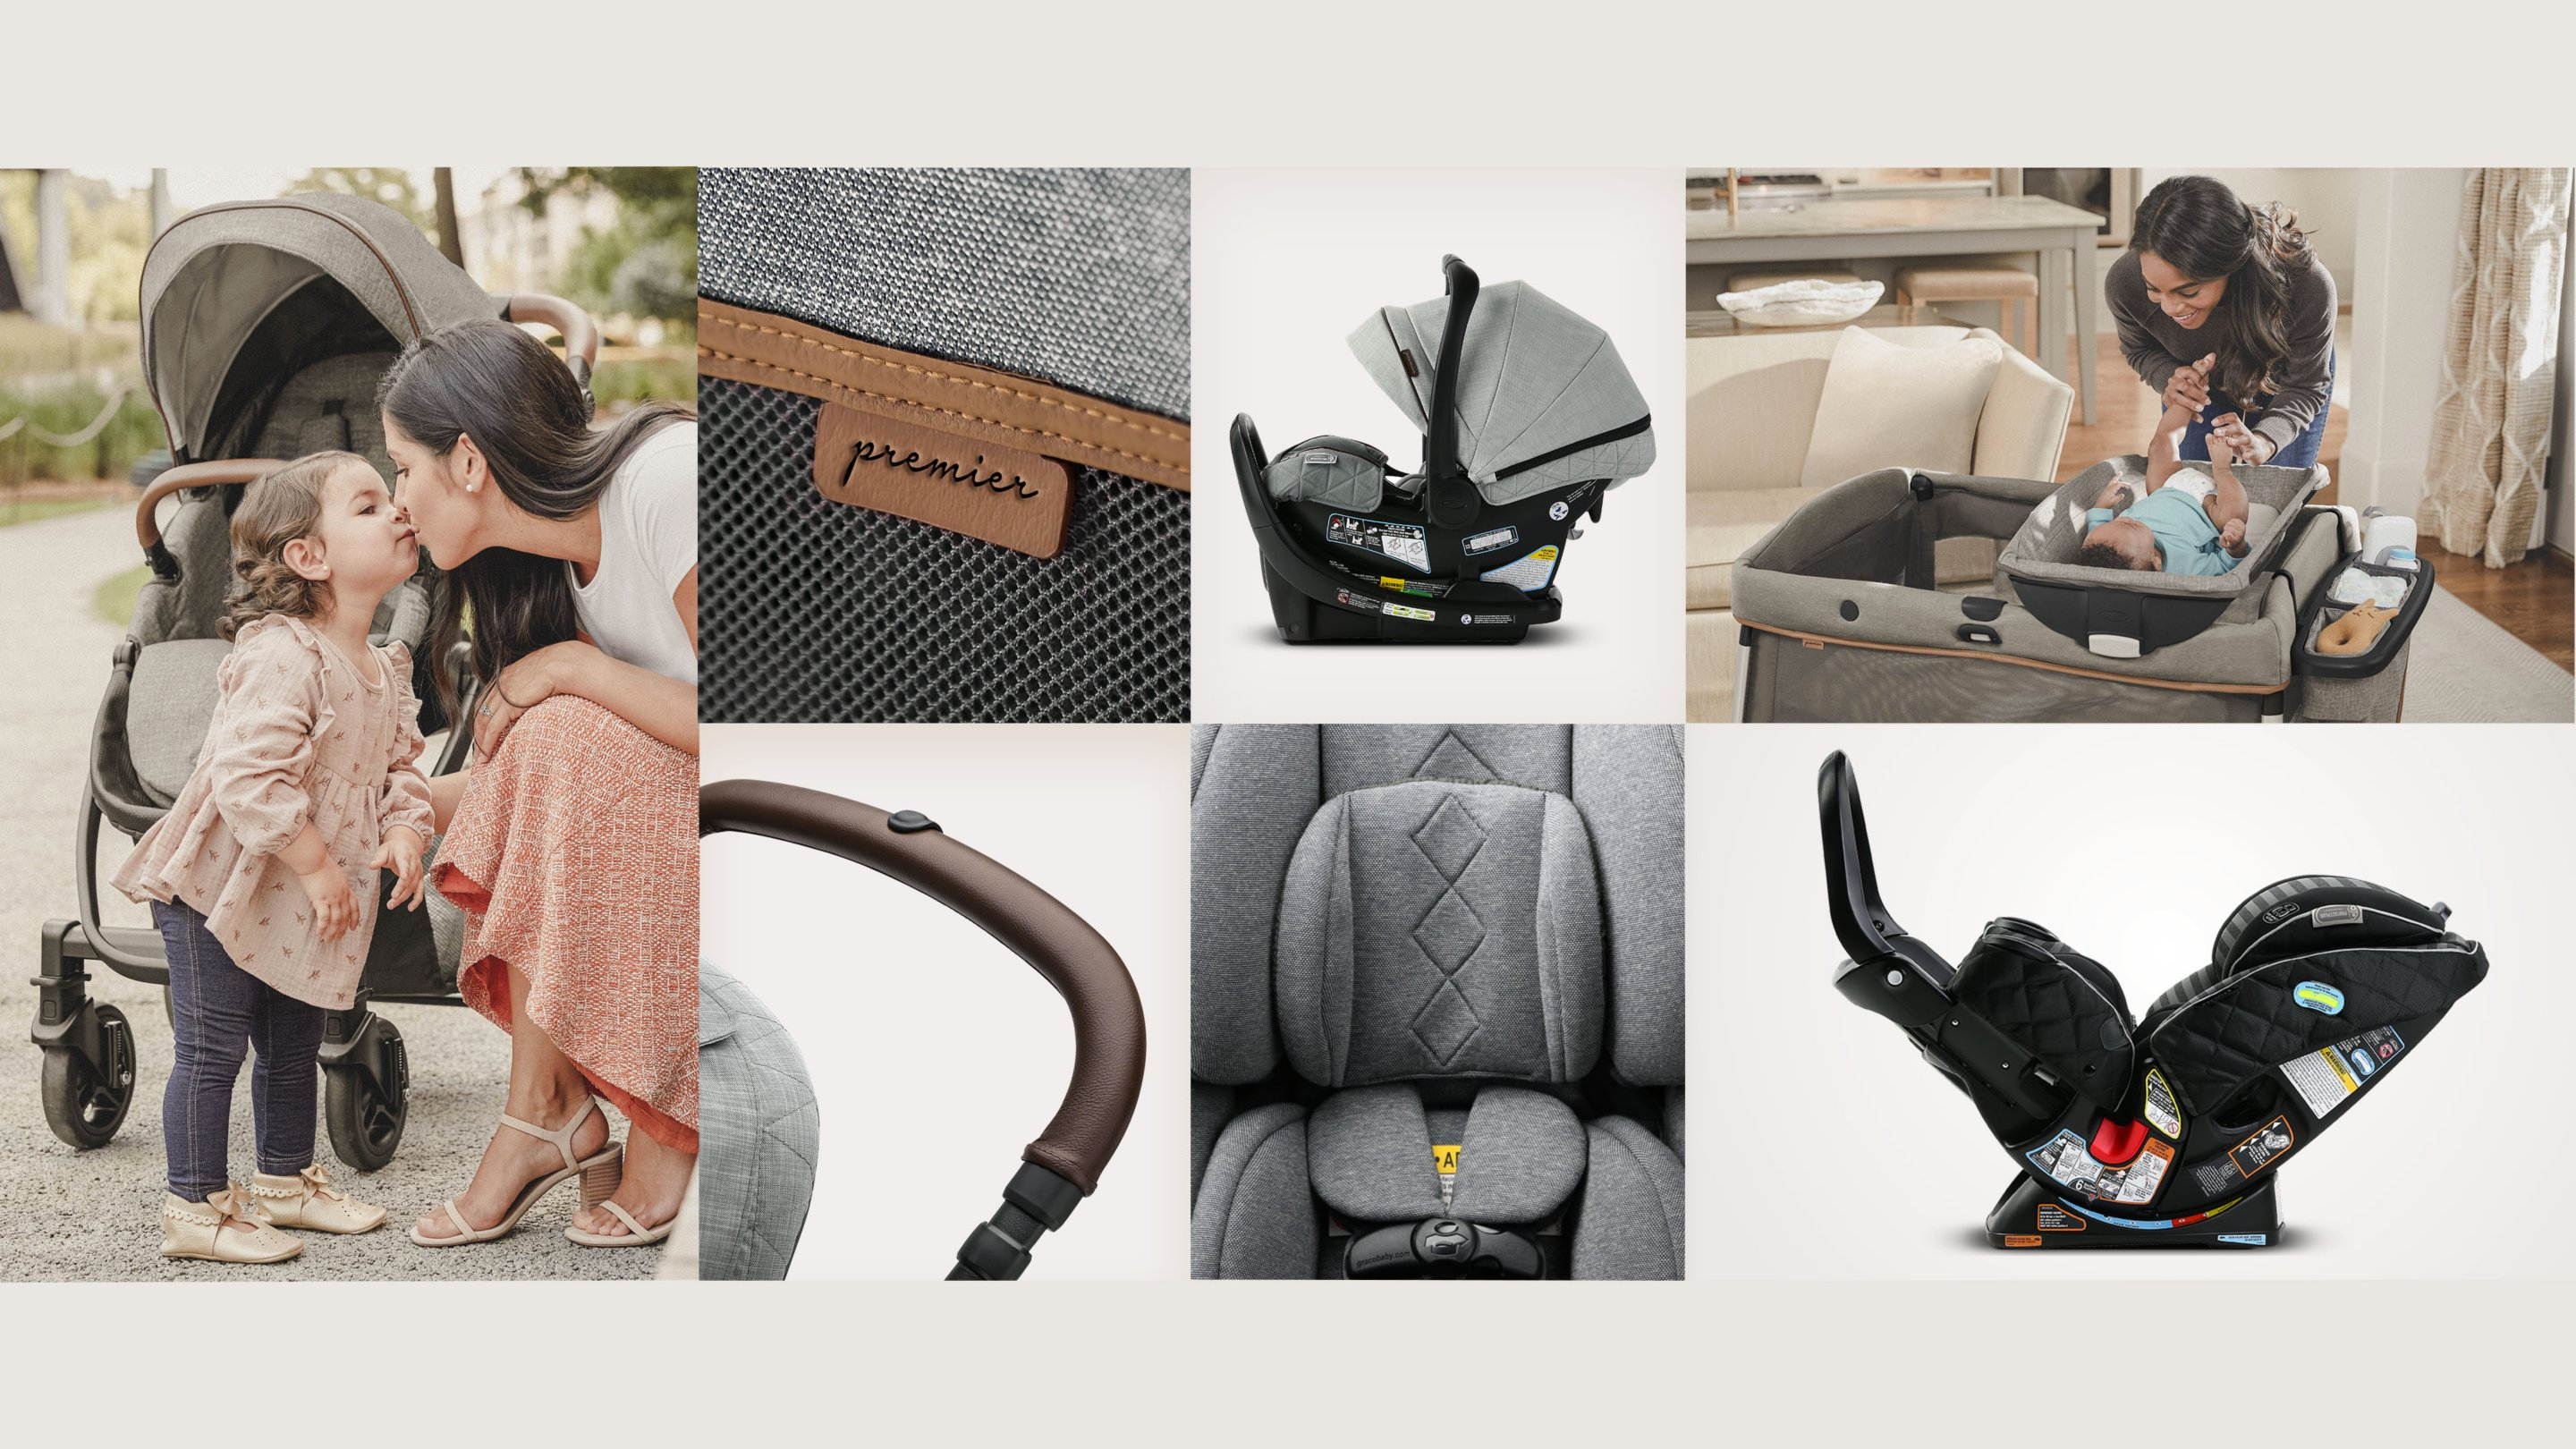 images of stroller baby carriage car seat mother and baby